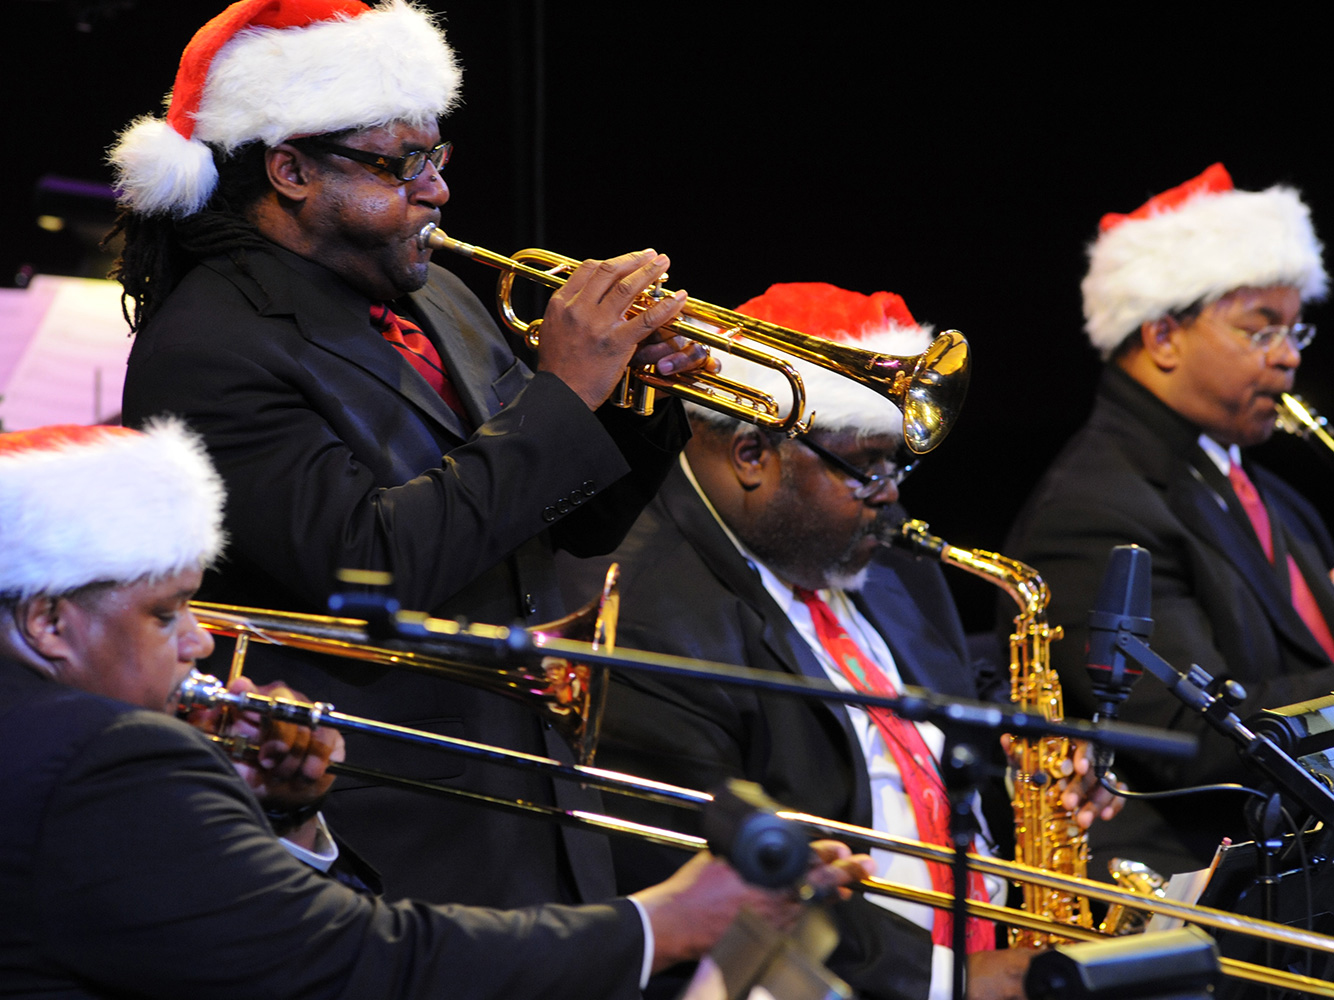 Lincoln Center Celebrates the Season